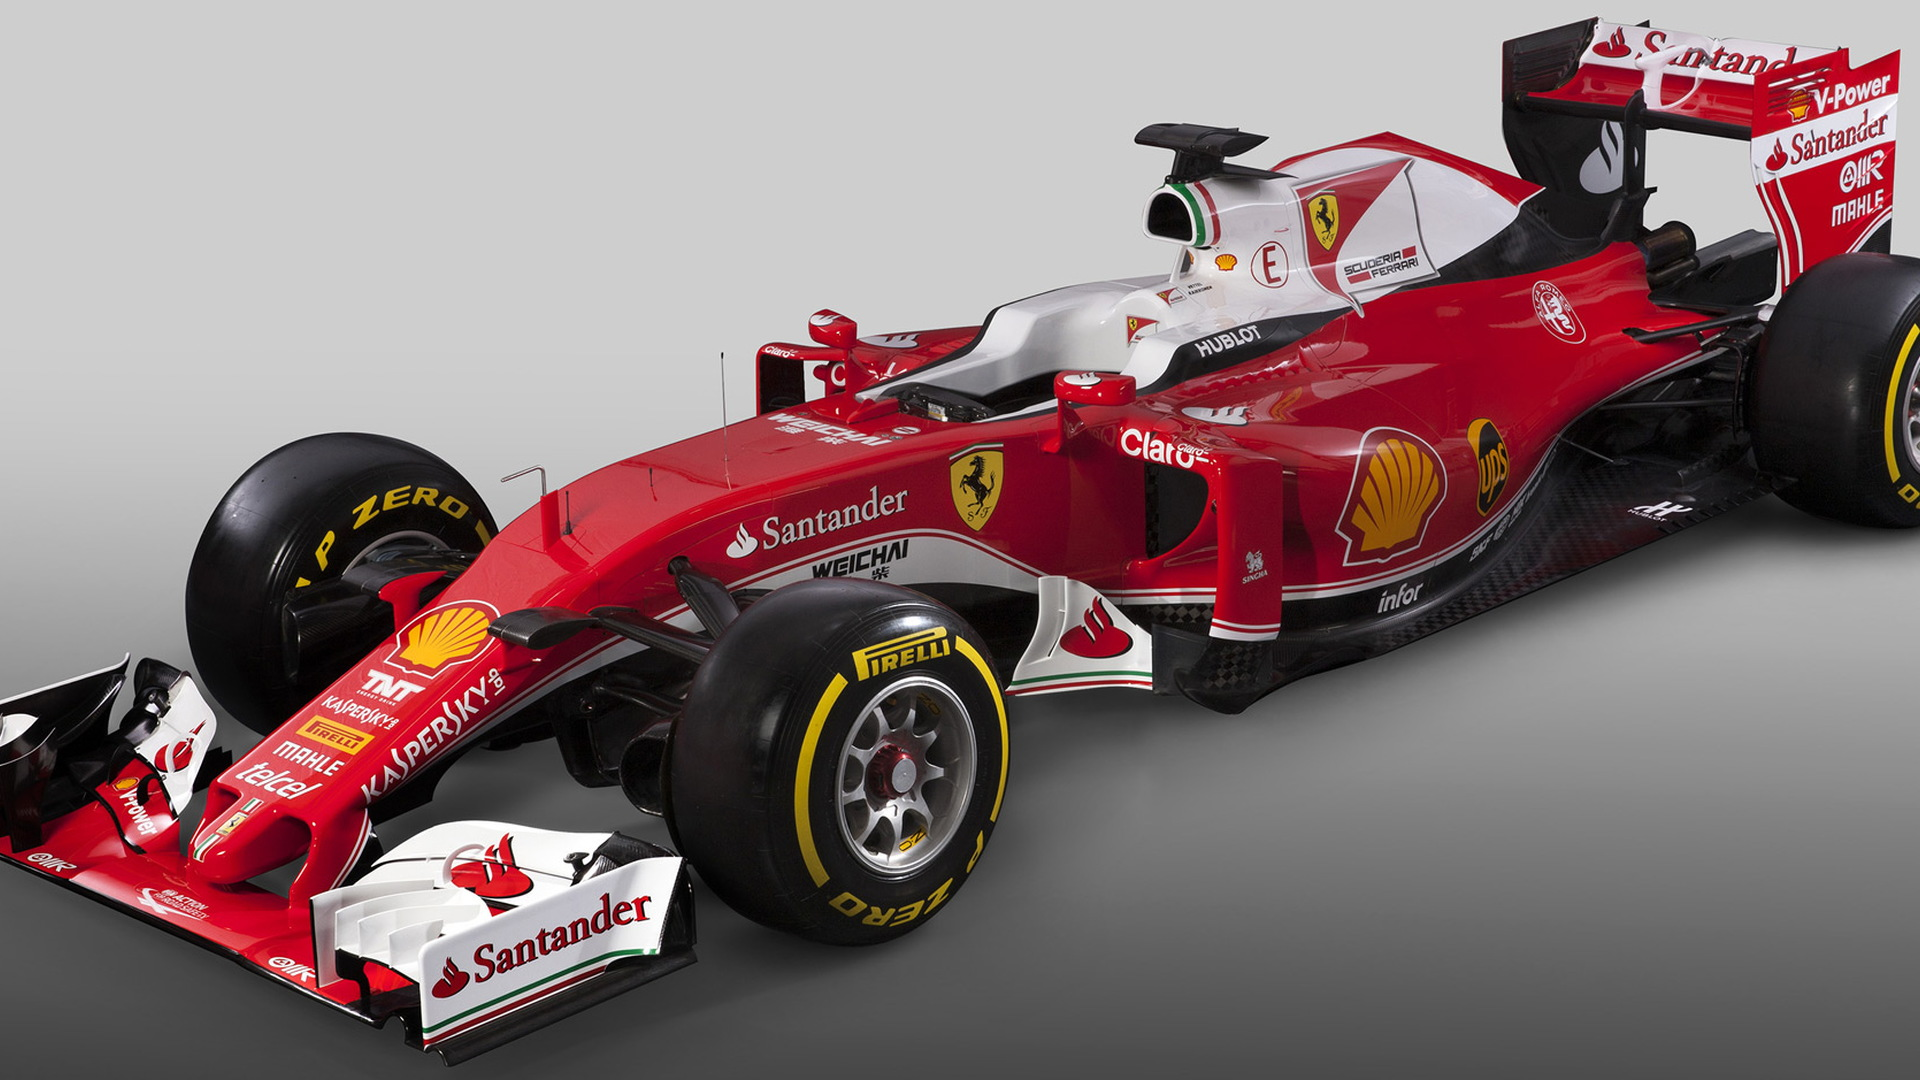 Ferrari SF16-H 2016 Formula One race car